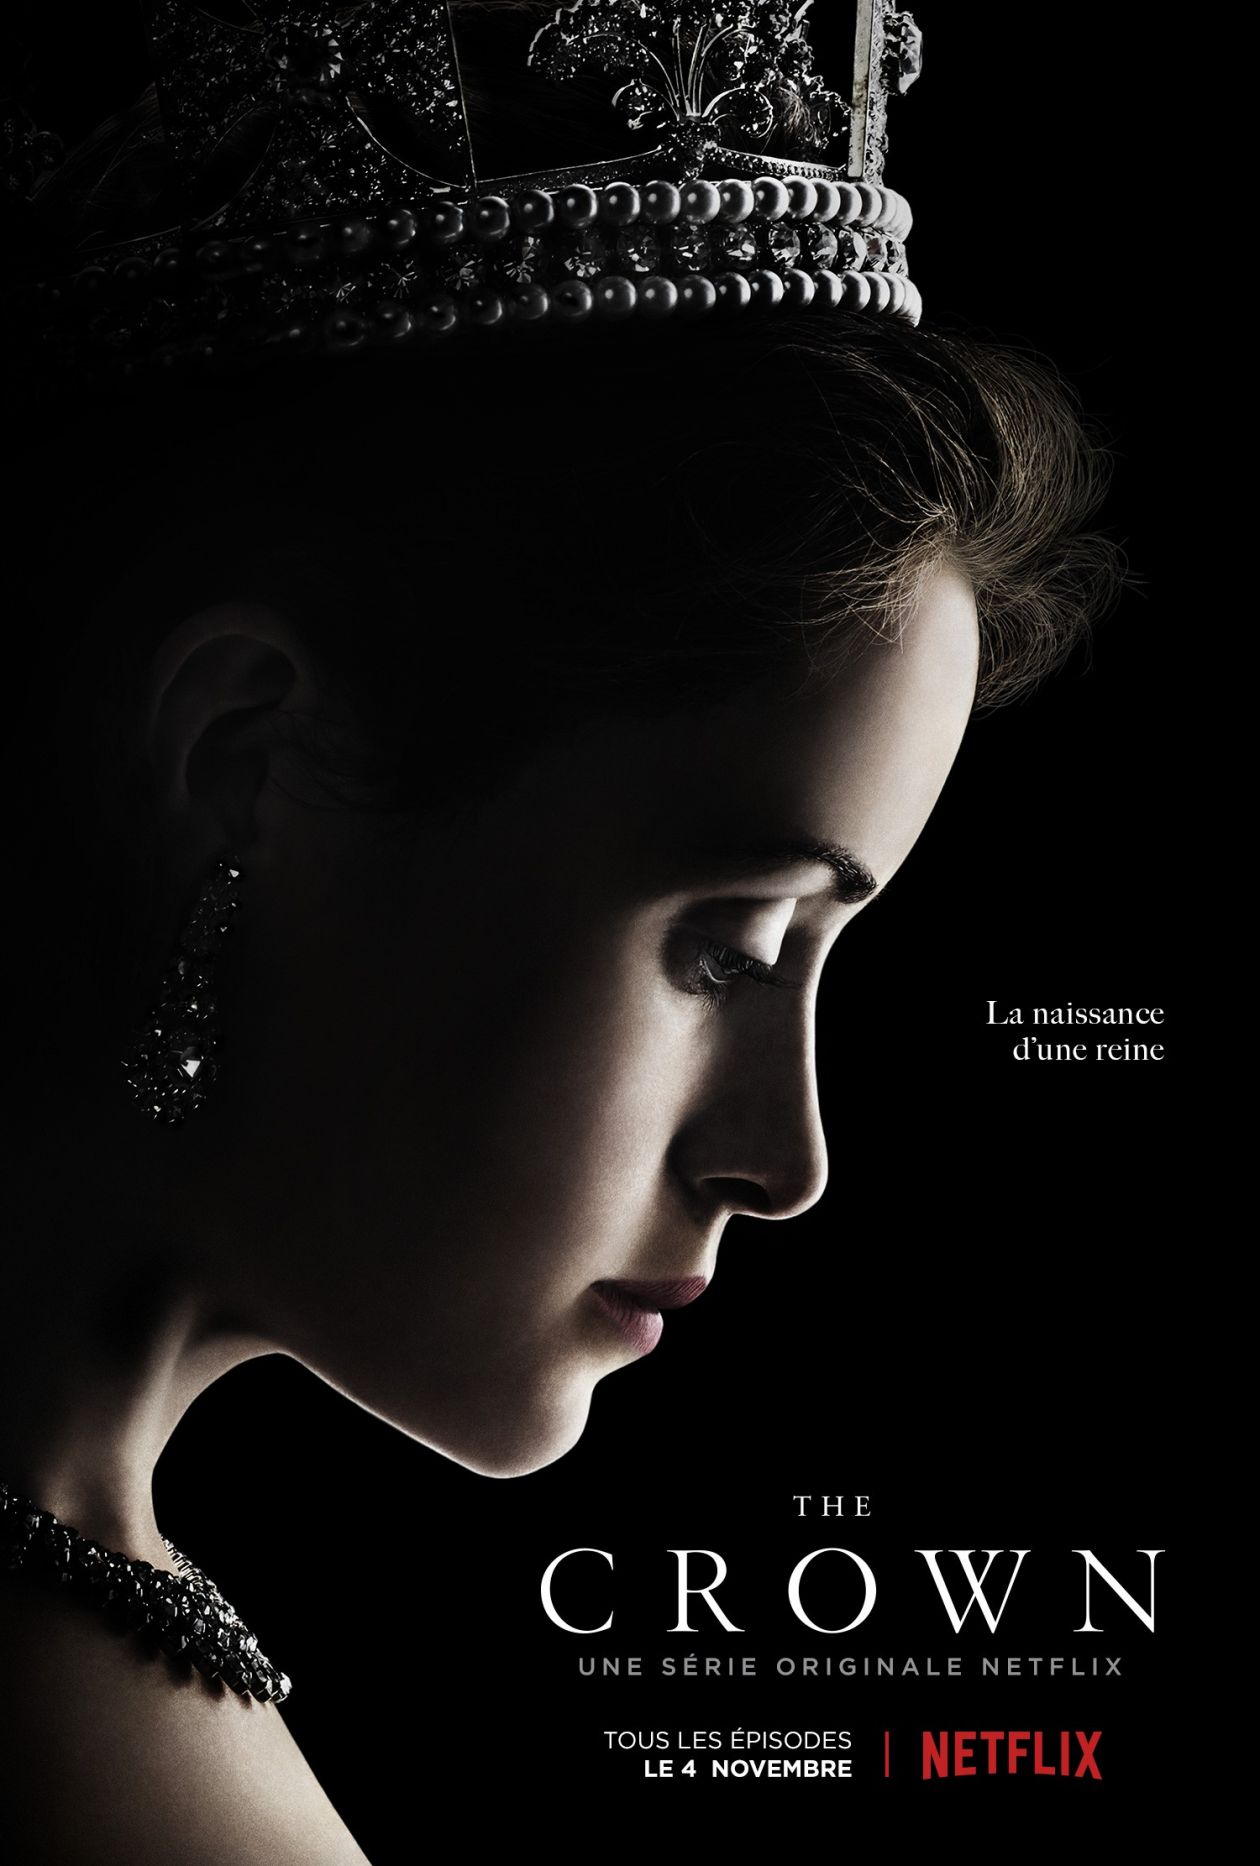 Claire Foy | The Crown : Queen Elizabeth II | NETFLIX 2016